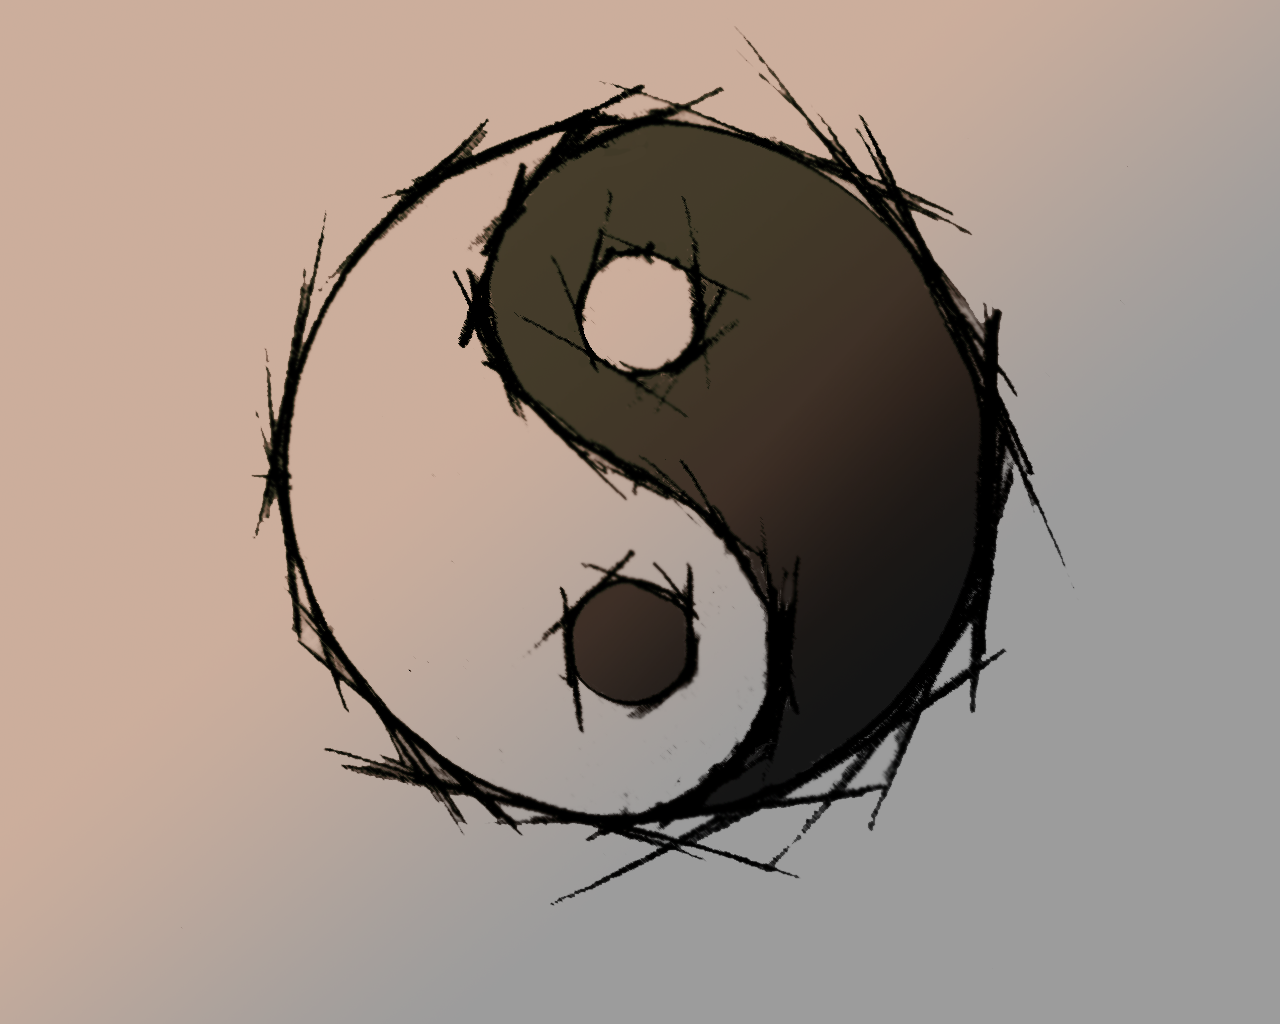 1280x1024px ying and yang wallpaper - wallpapersafari